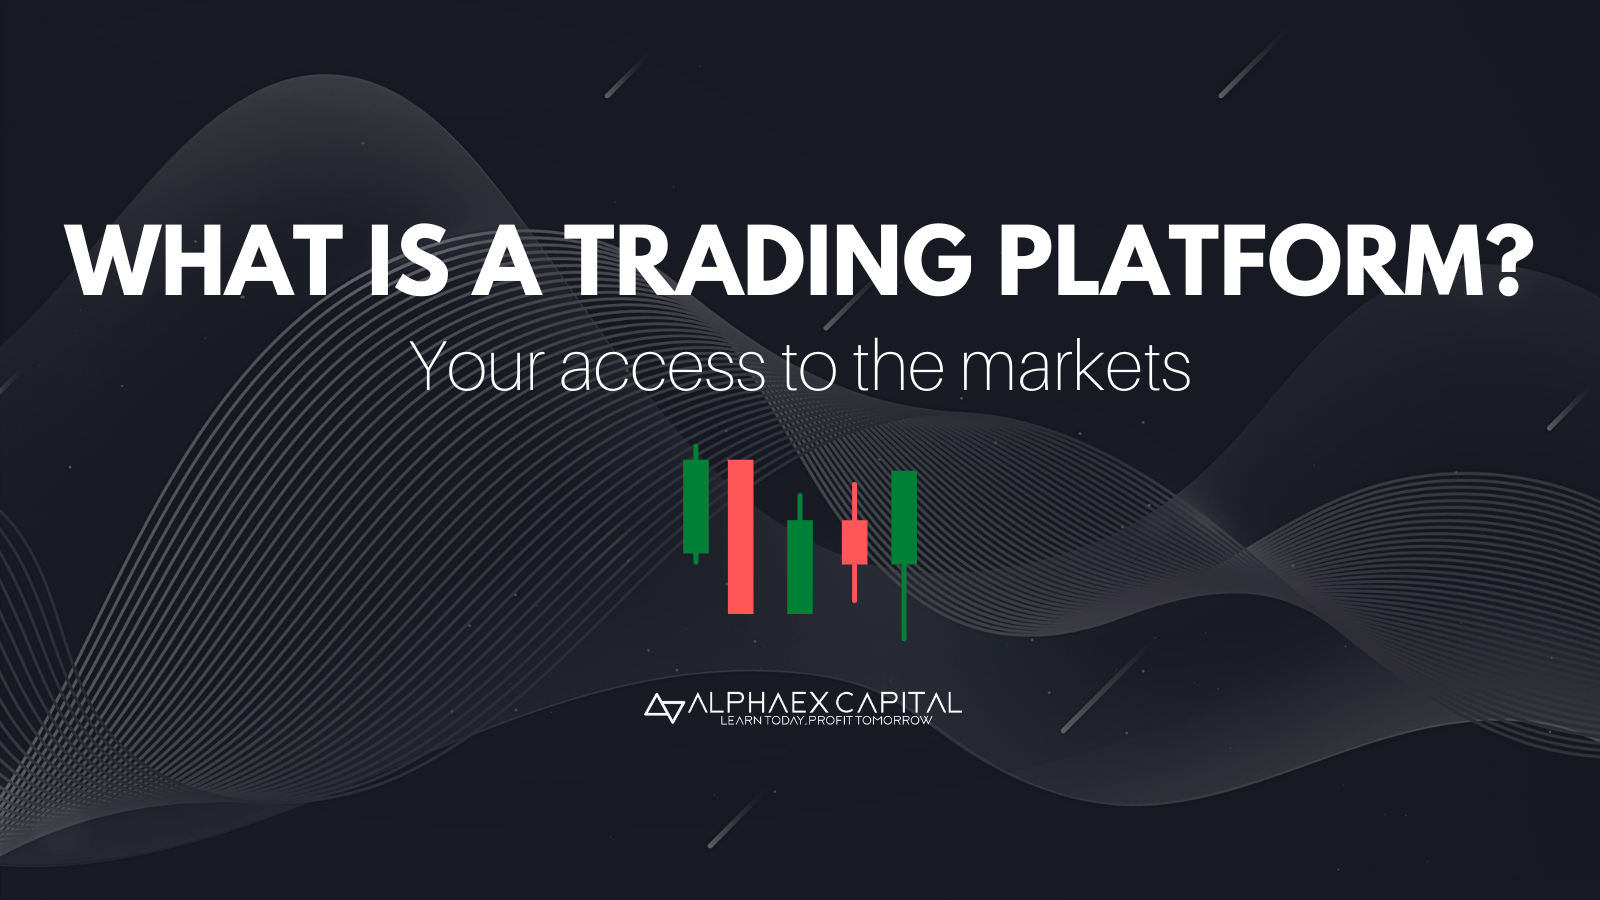 What Is A Trading Platform - Alphaex Capital